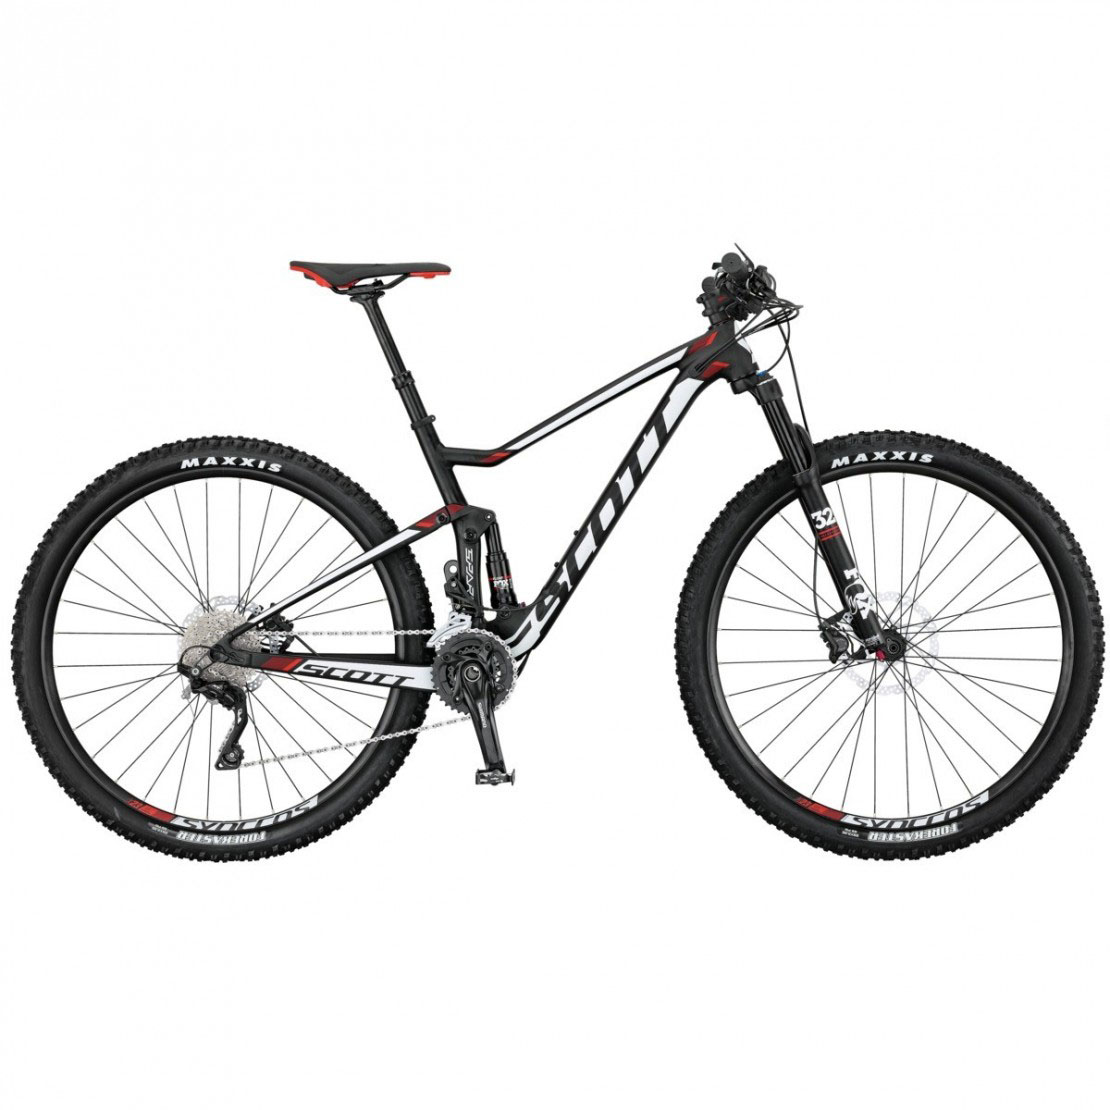 Spark 750 2017 - 27.5 Mountain Bike